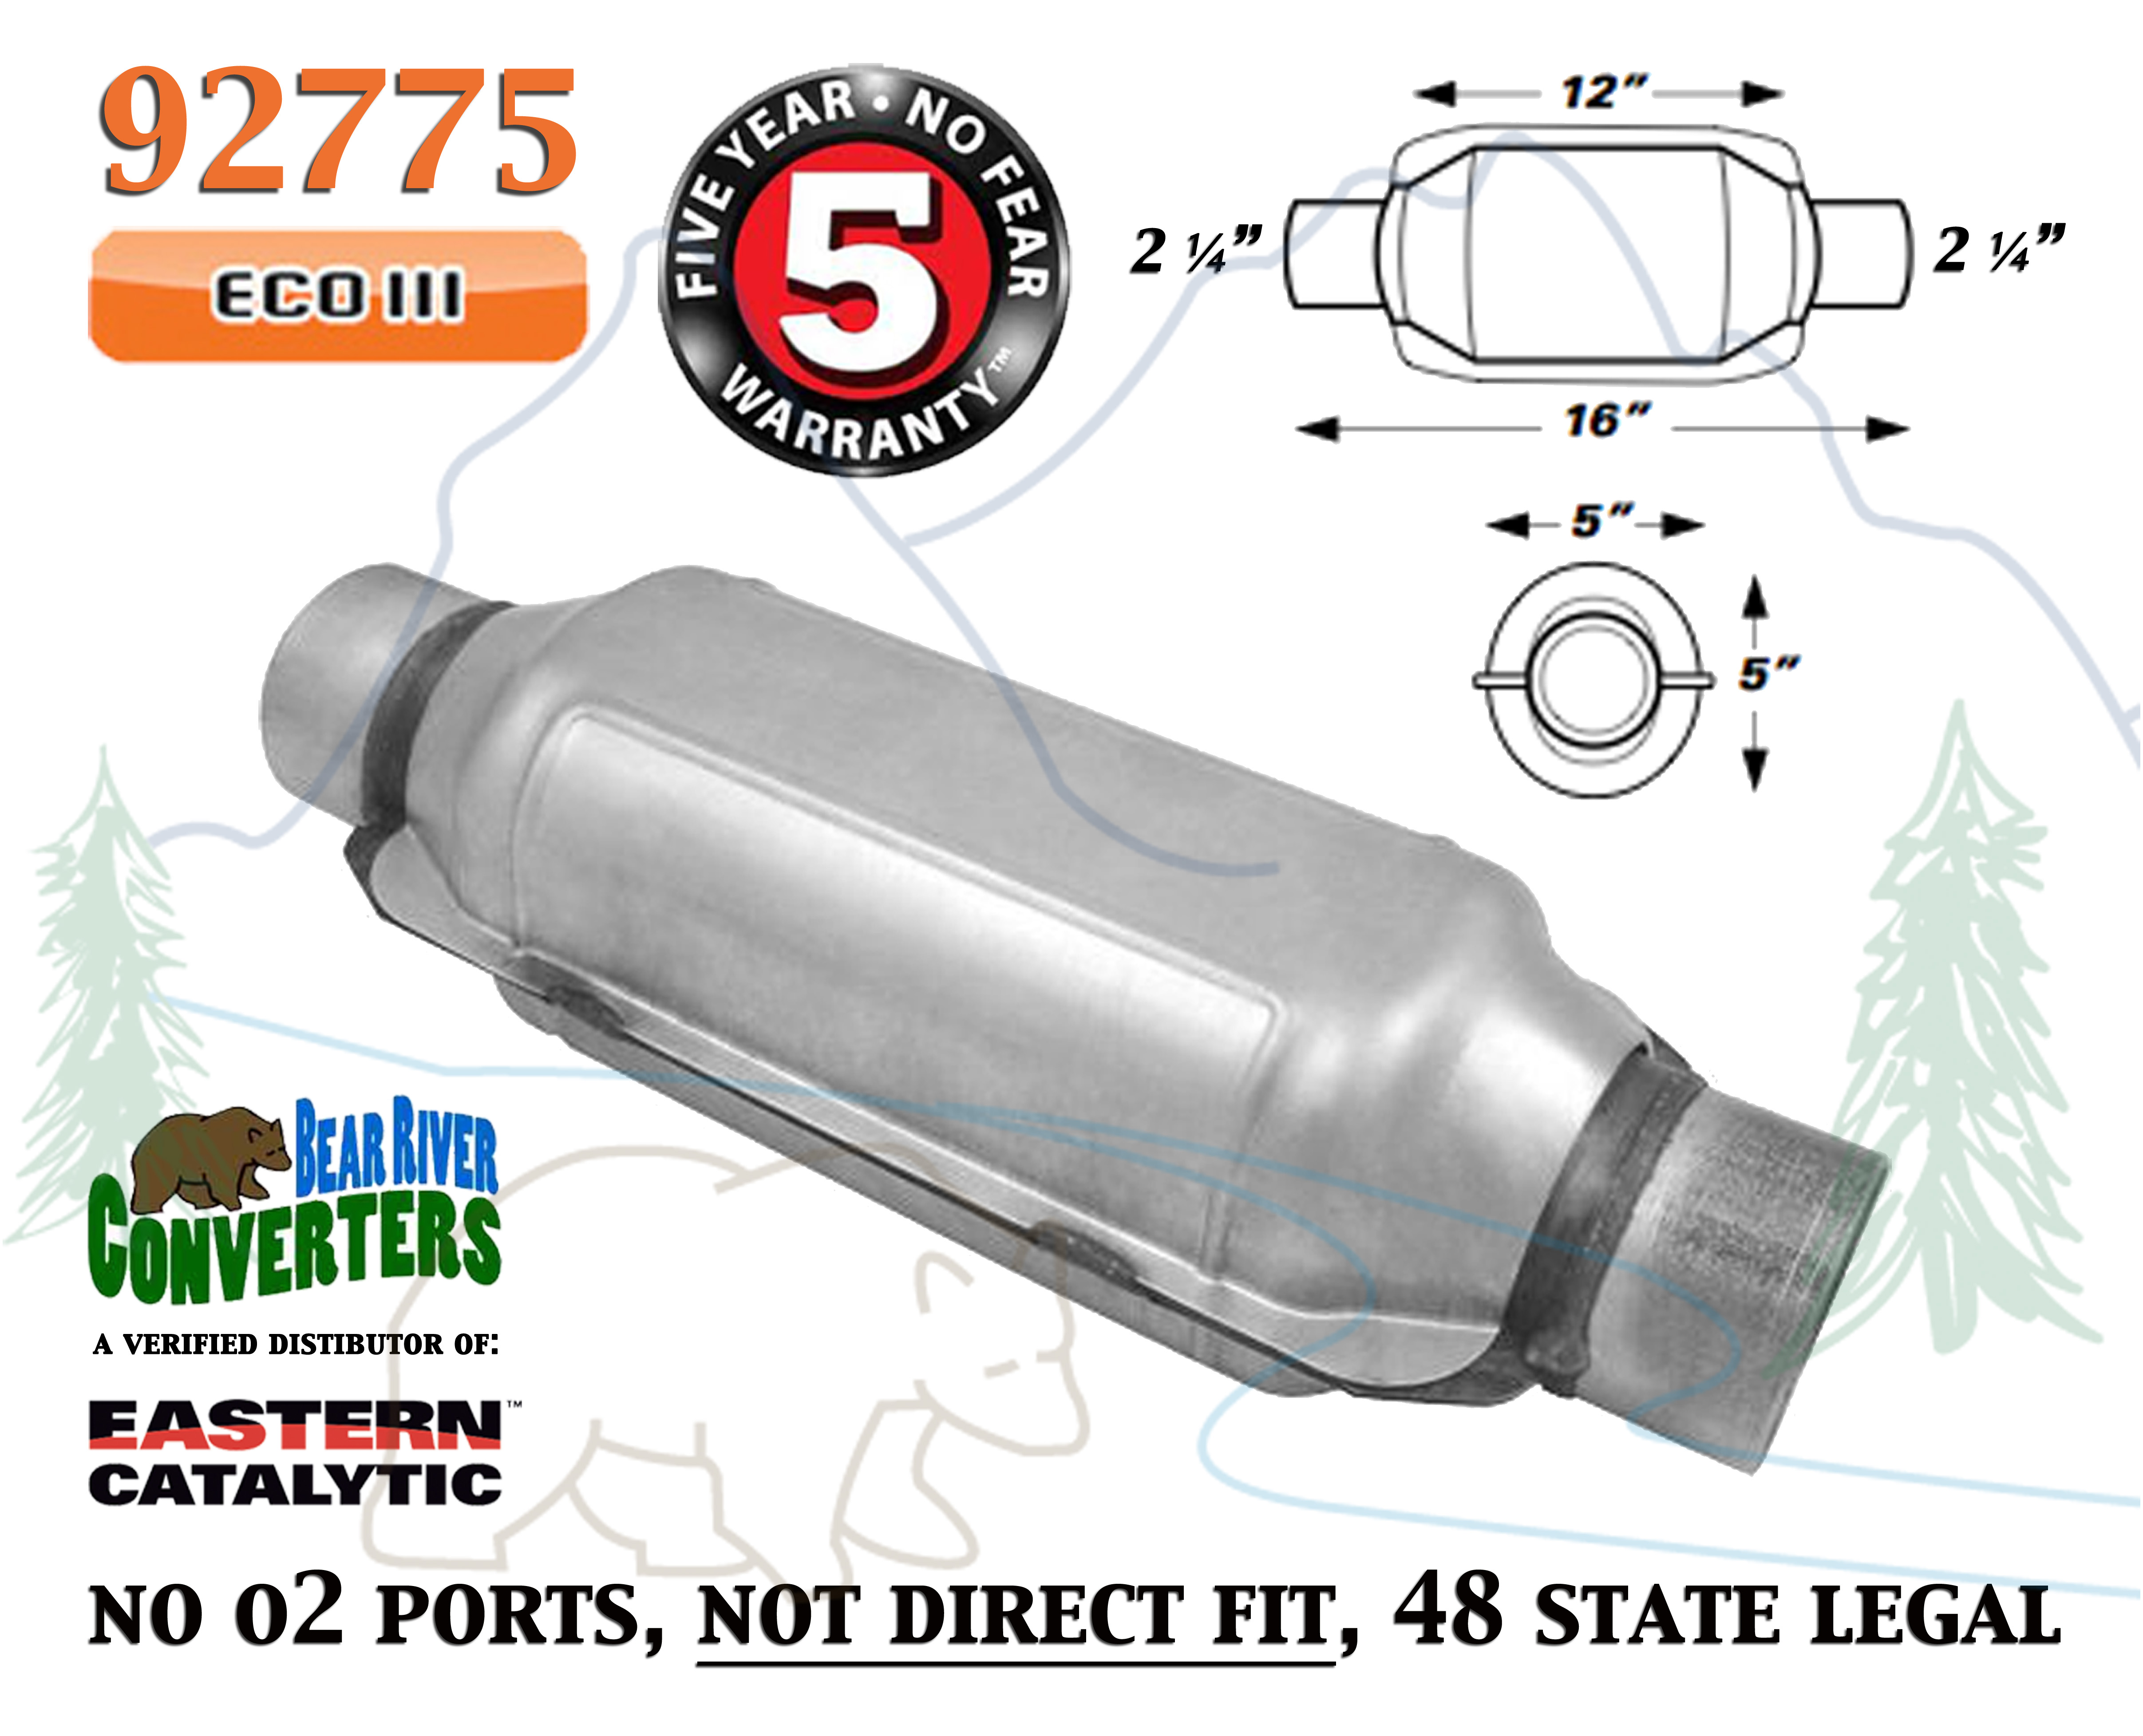 Eastern Catalytic Direct-Fit Catalytic Converters Federal EPA-Compliant 4...